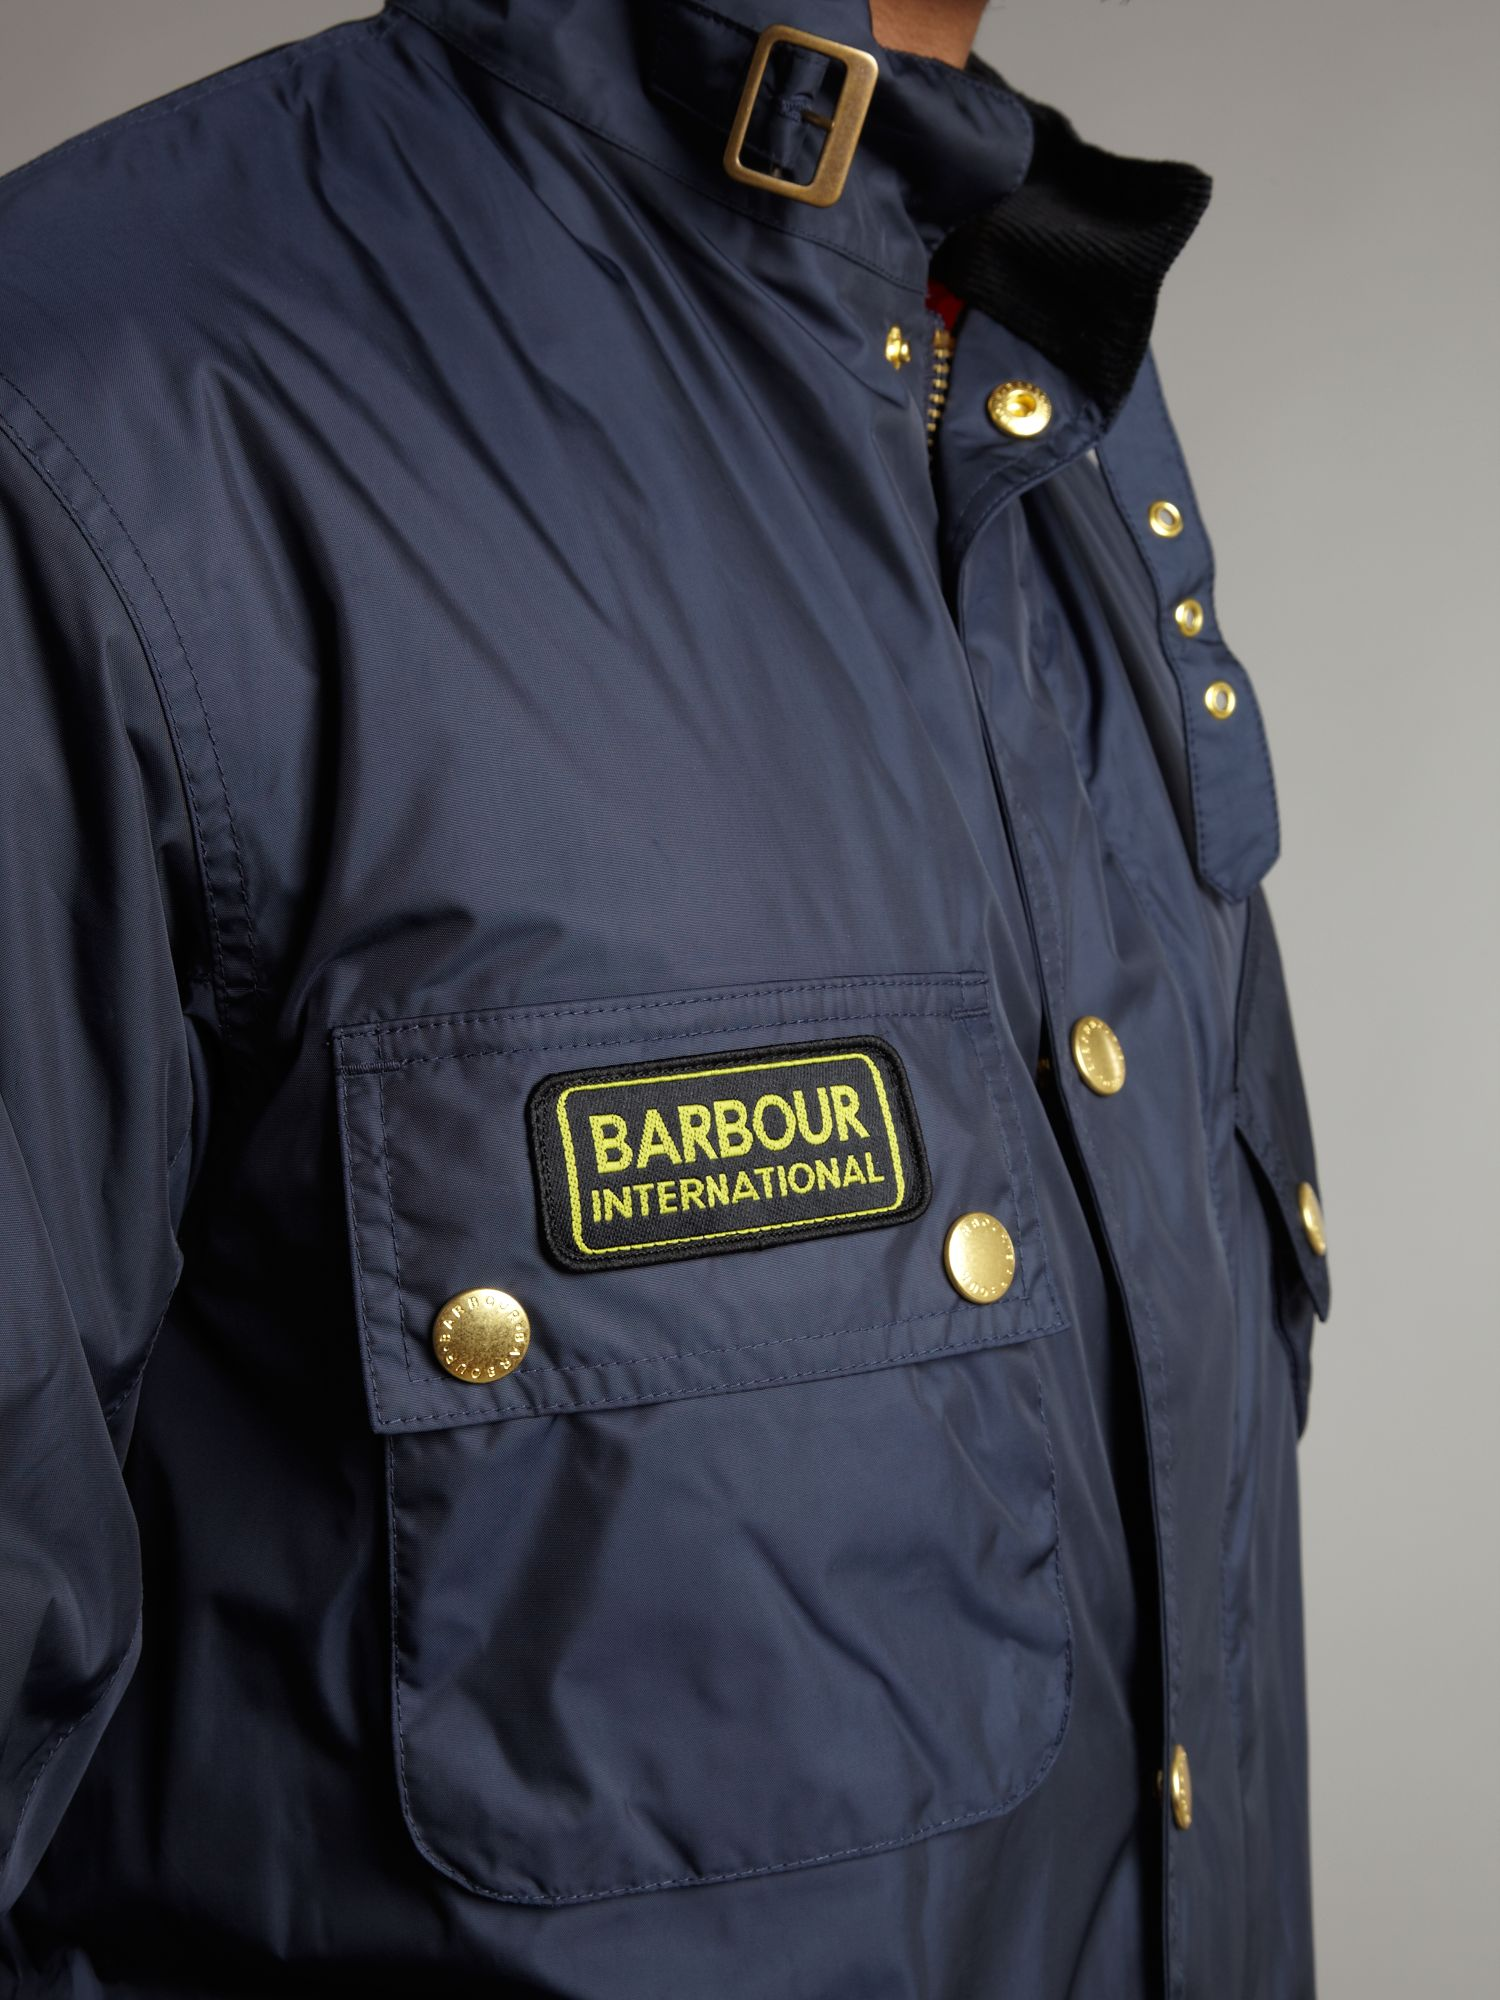 Lyst Barbour Lightening International Jacket In Blue For Men